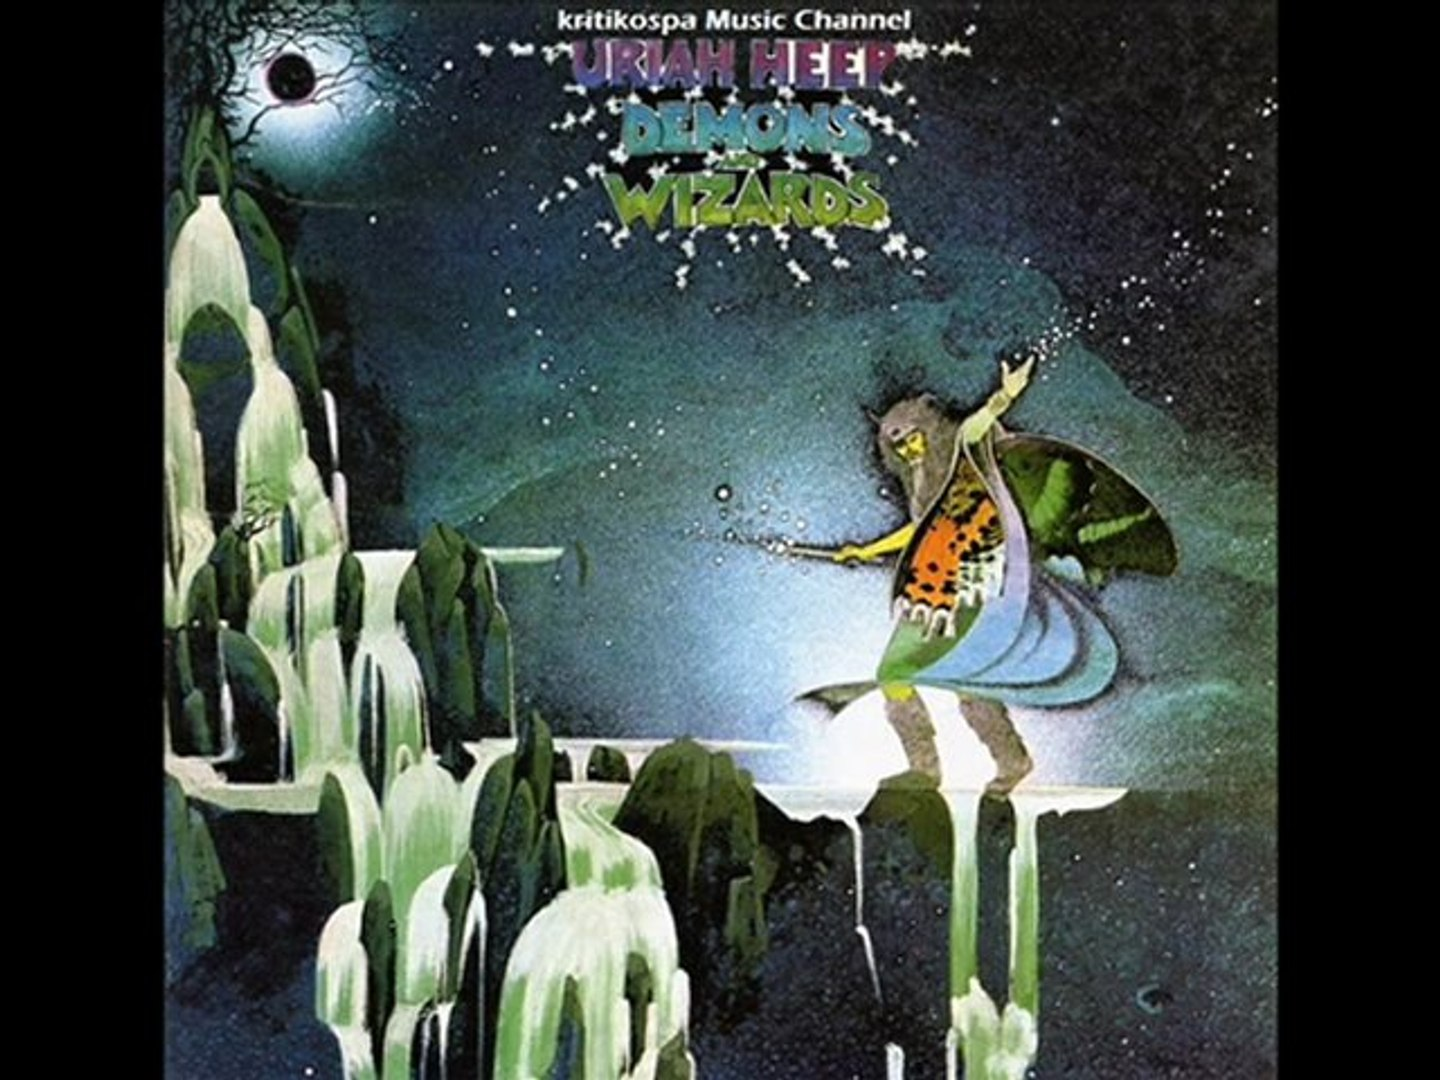 Uriah heep discography free torrent download